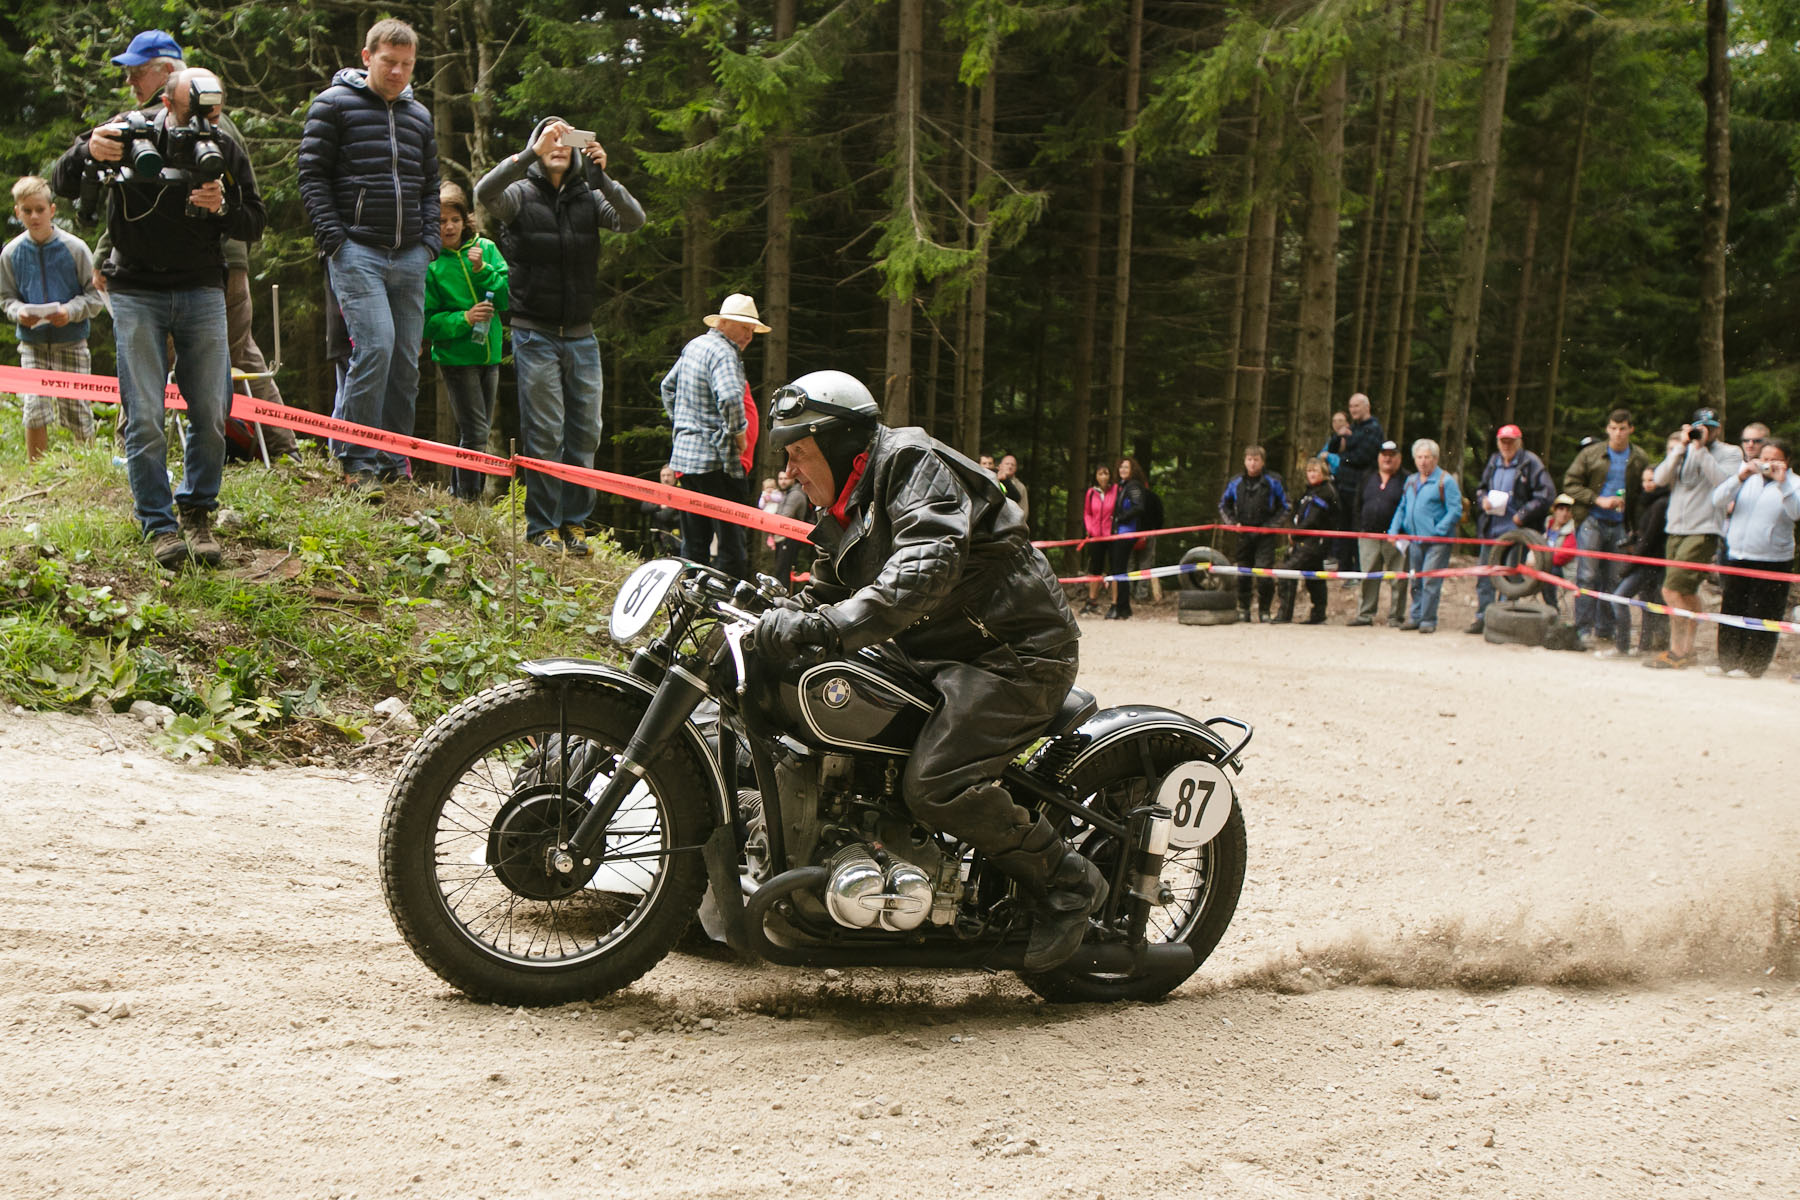 Miro and Anka Hrast (SLO) on a 1939 BMW sidecar motorcycle compete in the 19th Hrast Memorial, the international oldtimers\' mountain race in Ljubelj, Slovenia, Sep. 13, 2015.